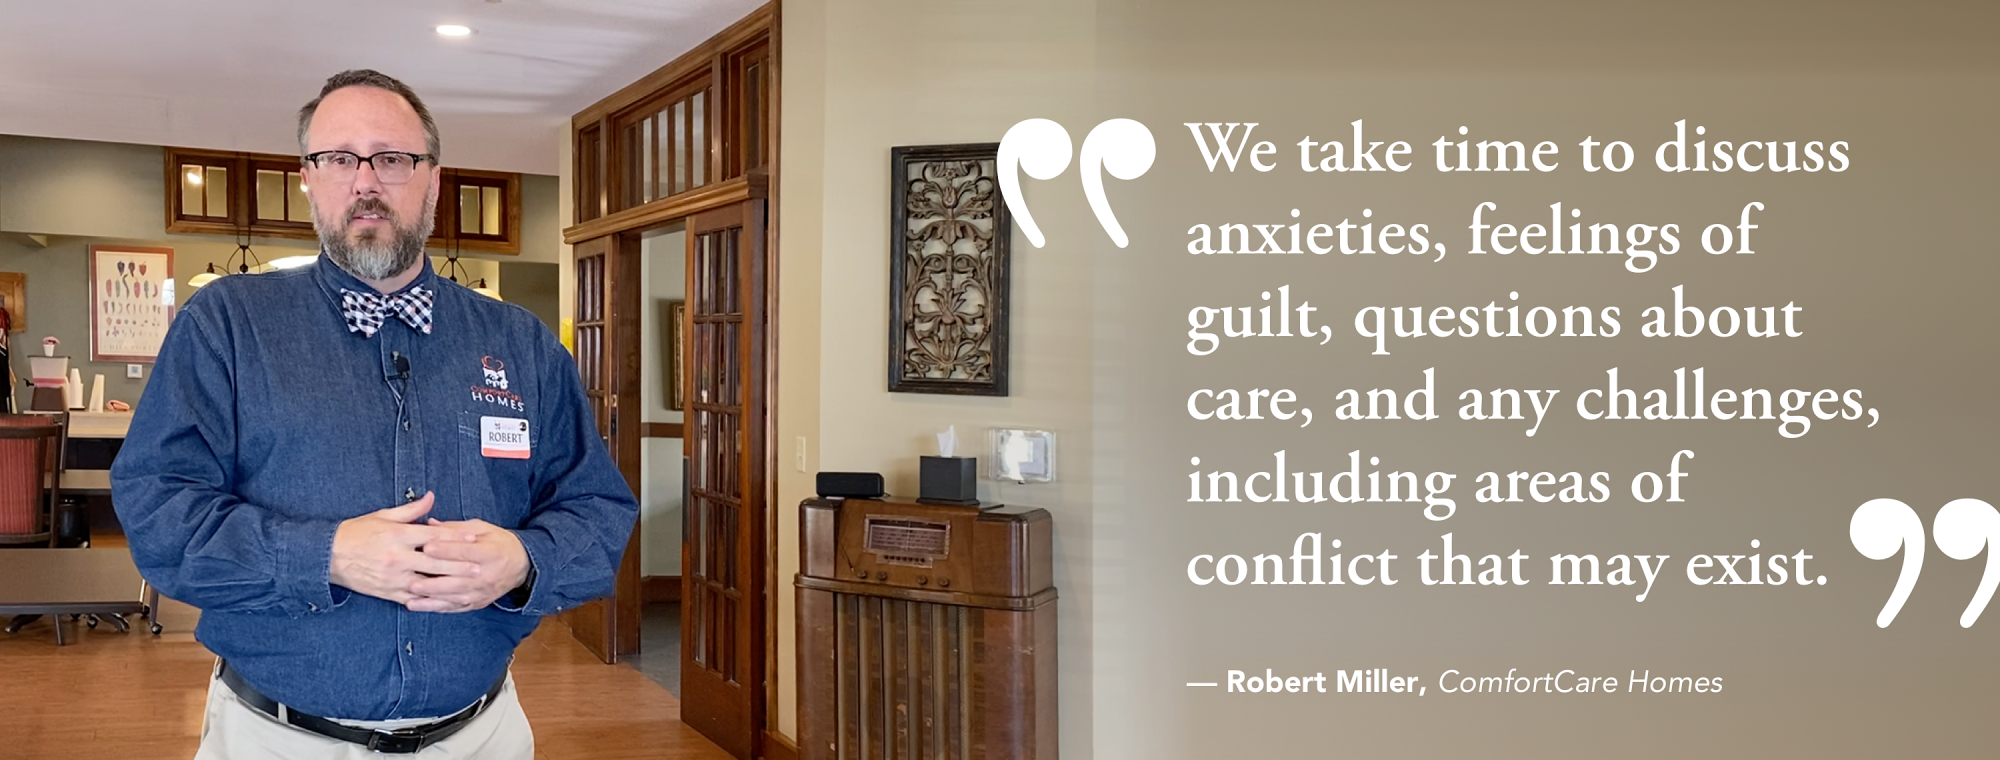 Robert Miller Quote, ComfortCare Homes